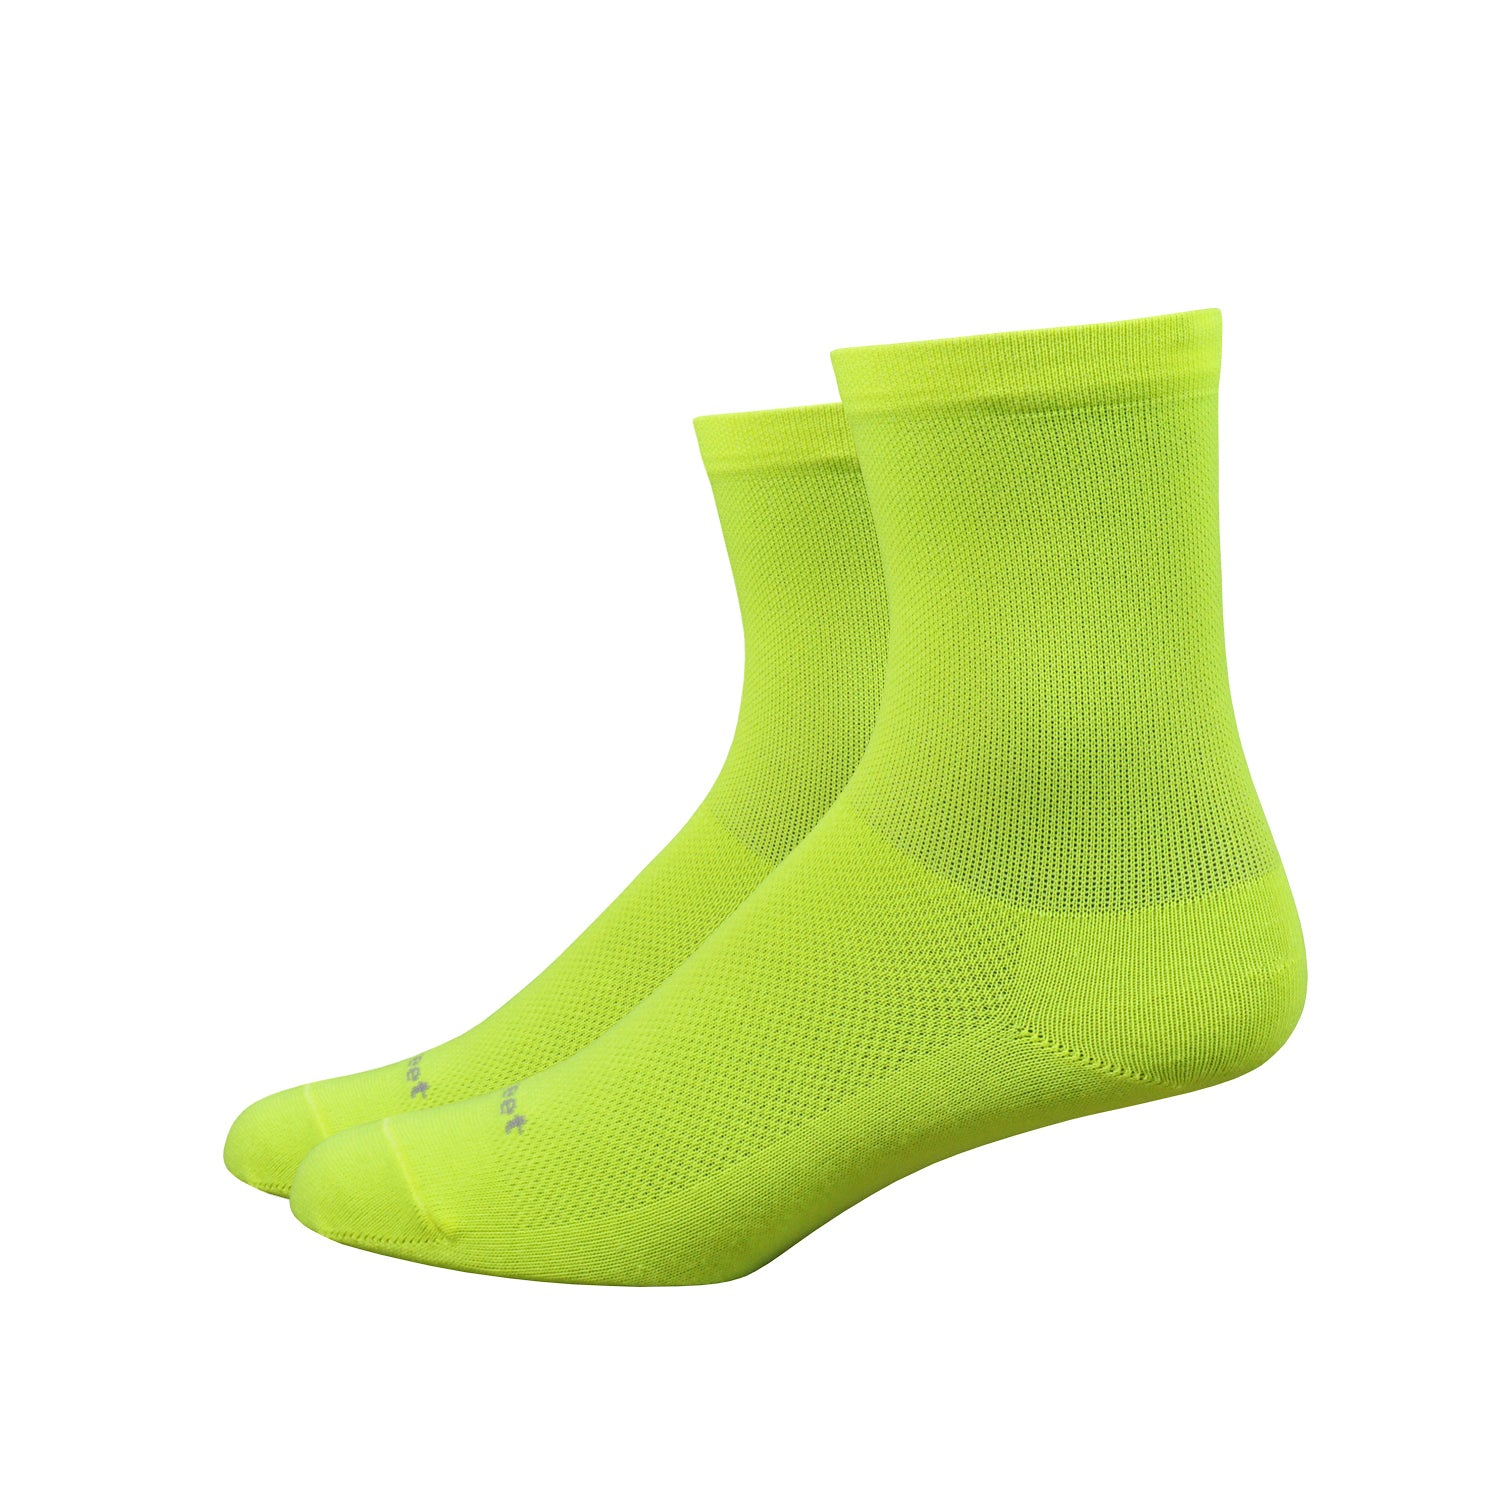 "Aireator Women's 4"" Neon Yellow"